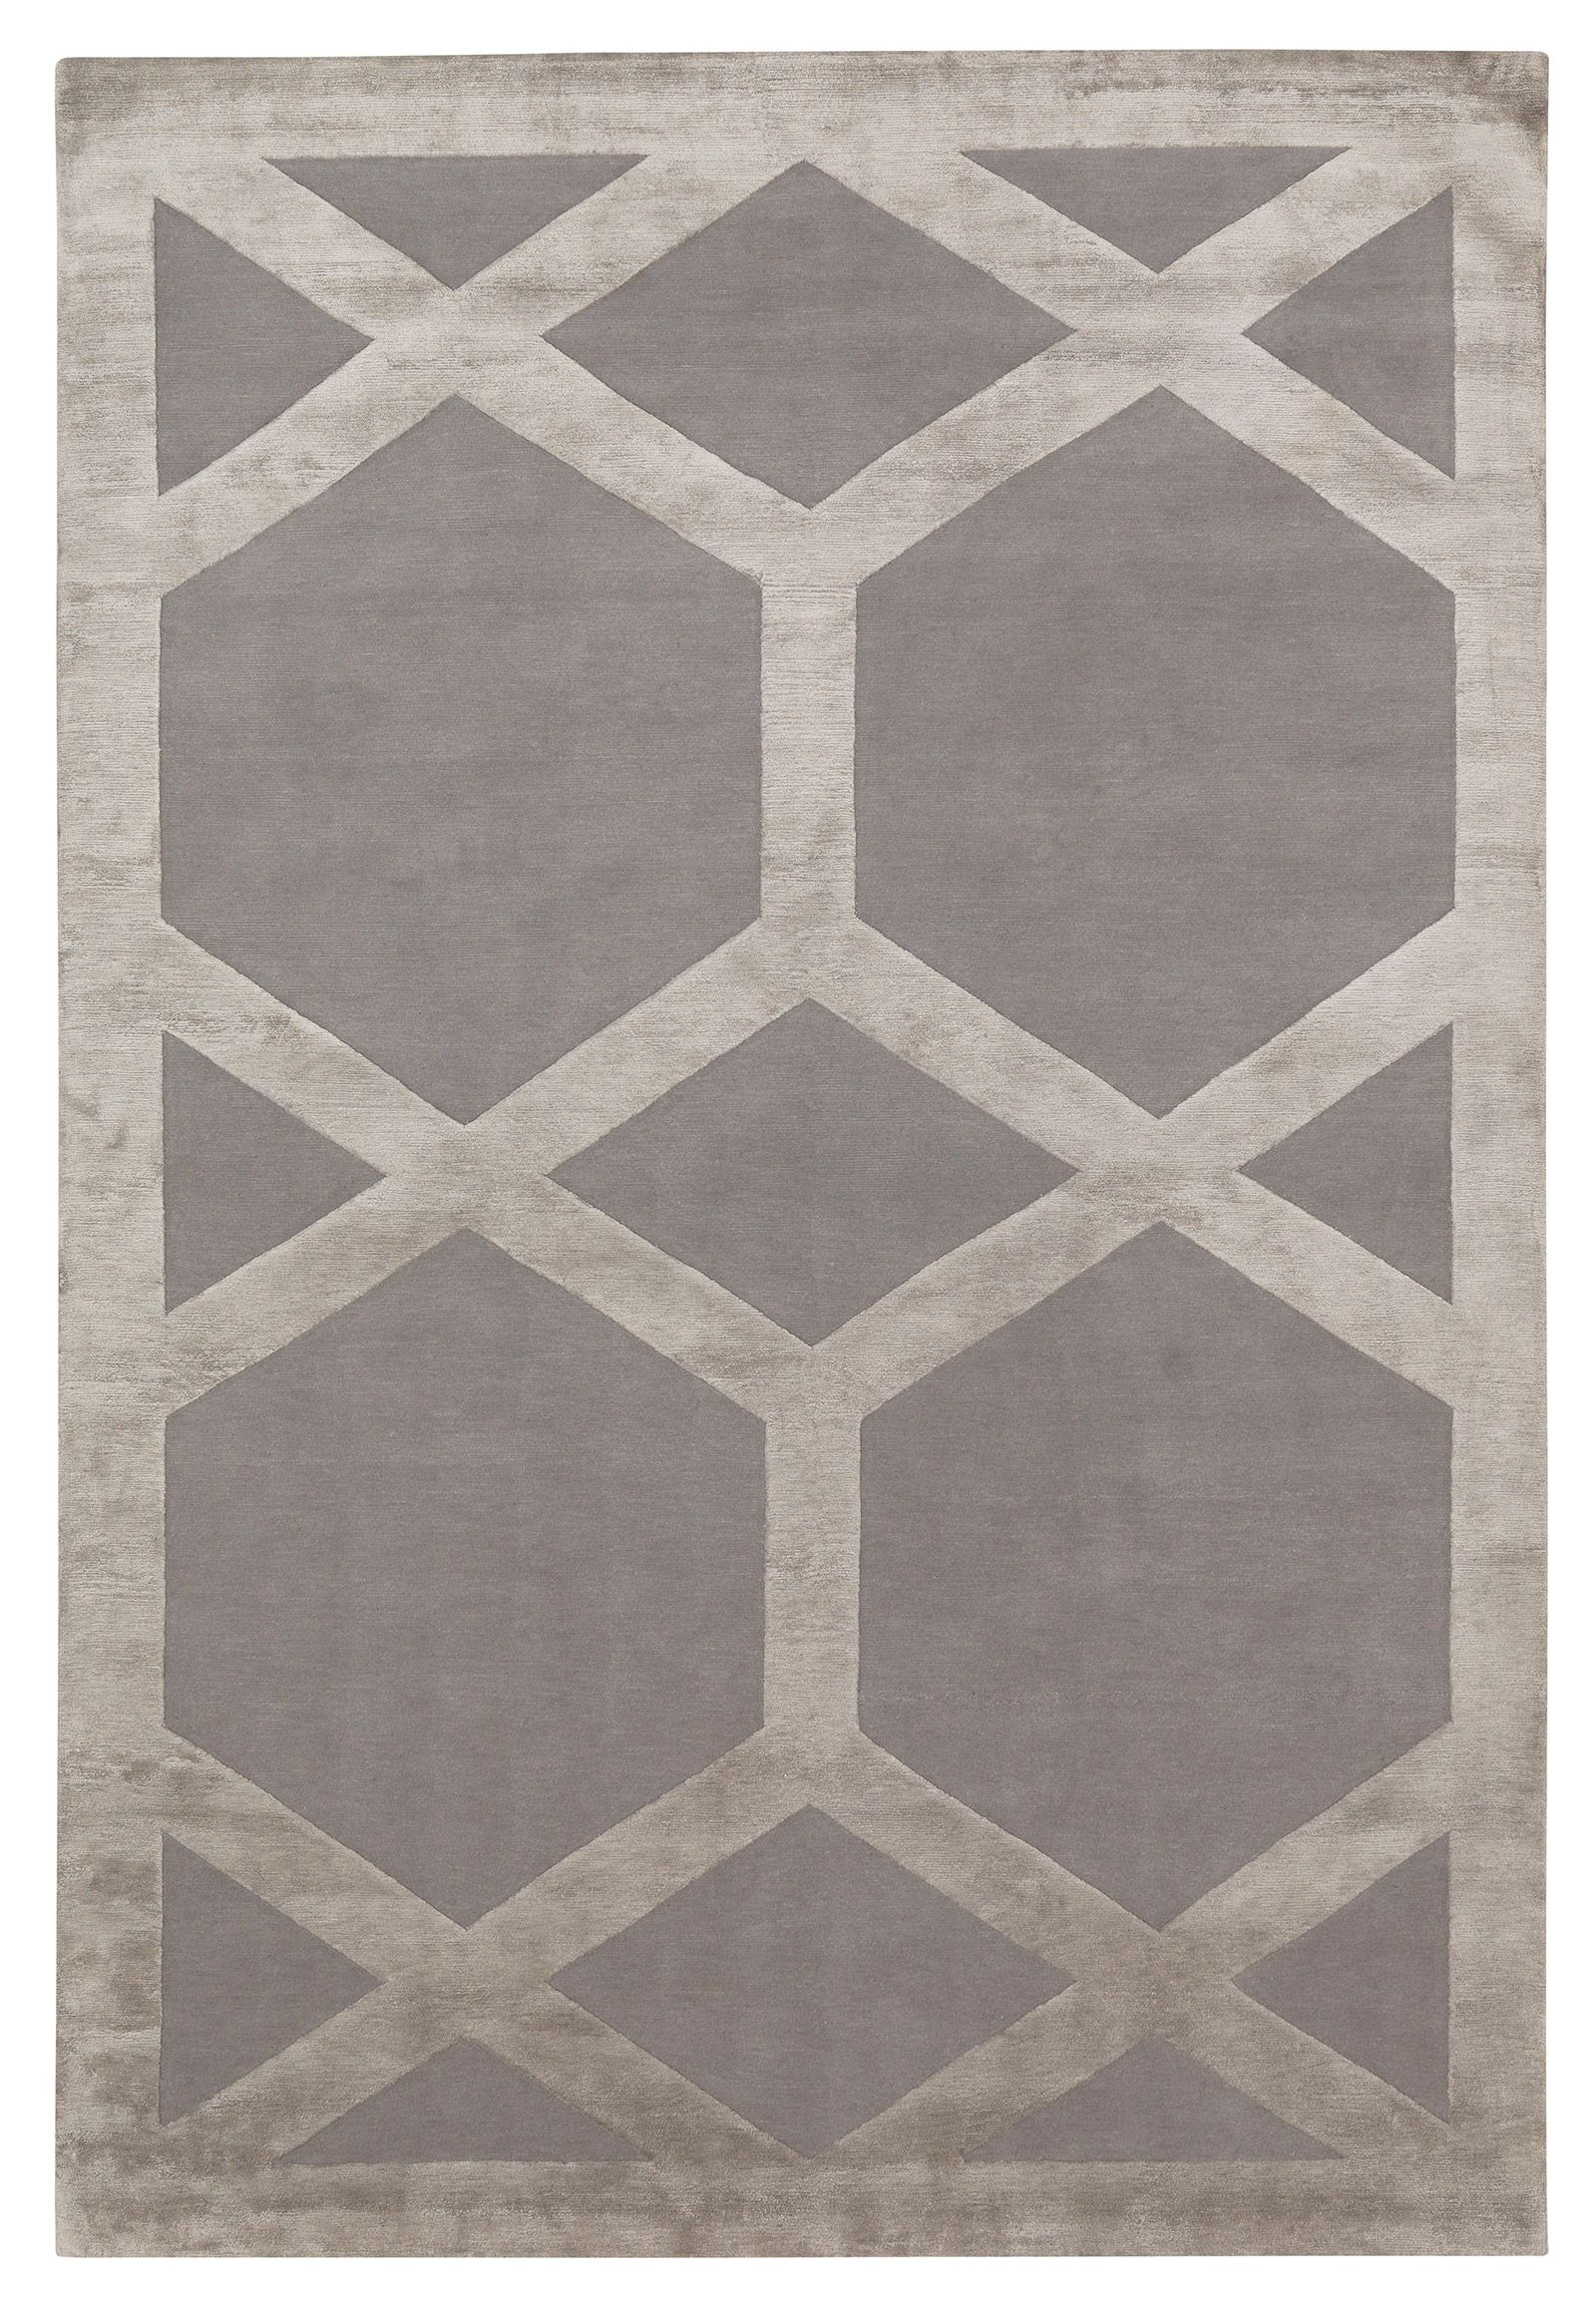 Cora By Suzanne Sharp Wool And Silk Contemporary Hand Knotted Designer Rugs